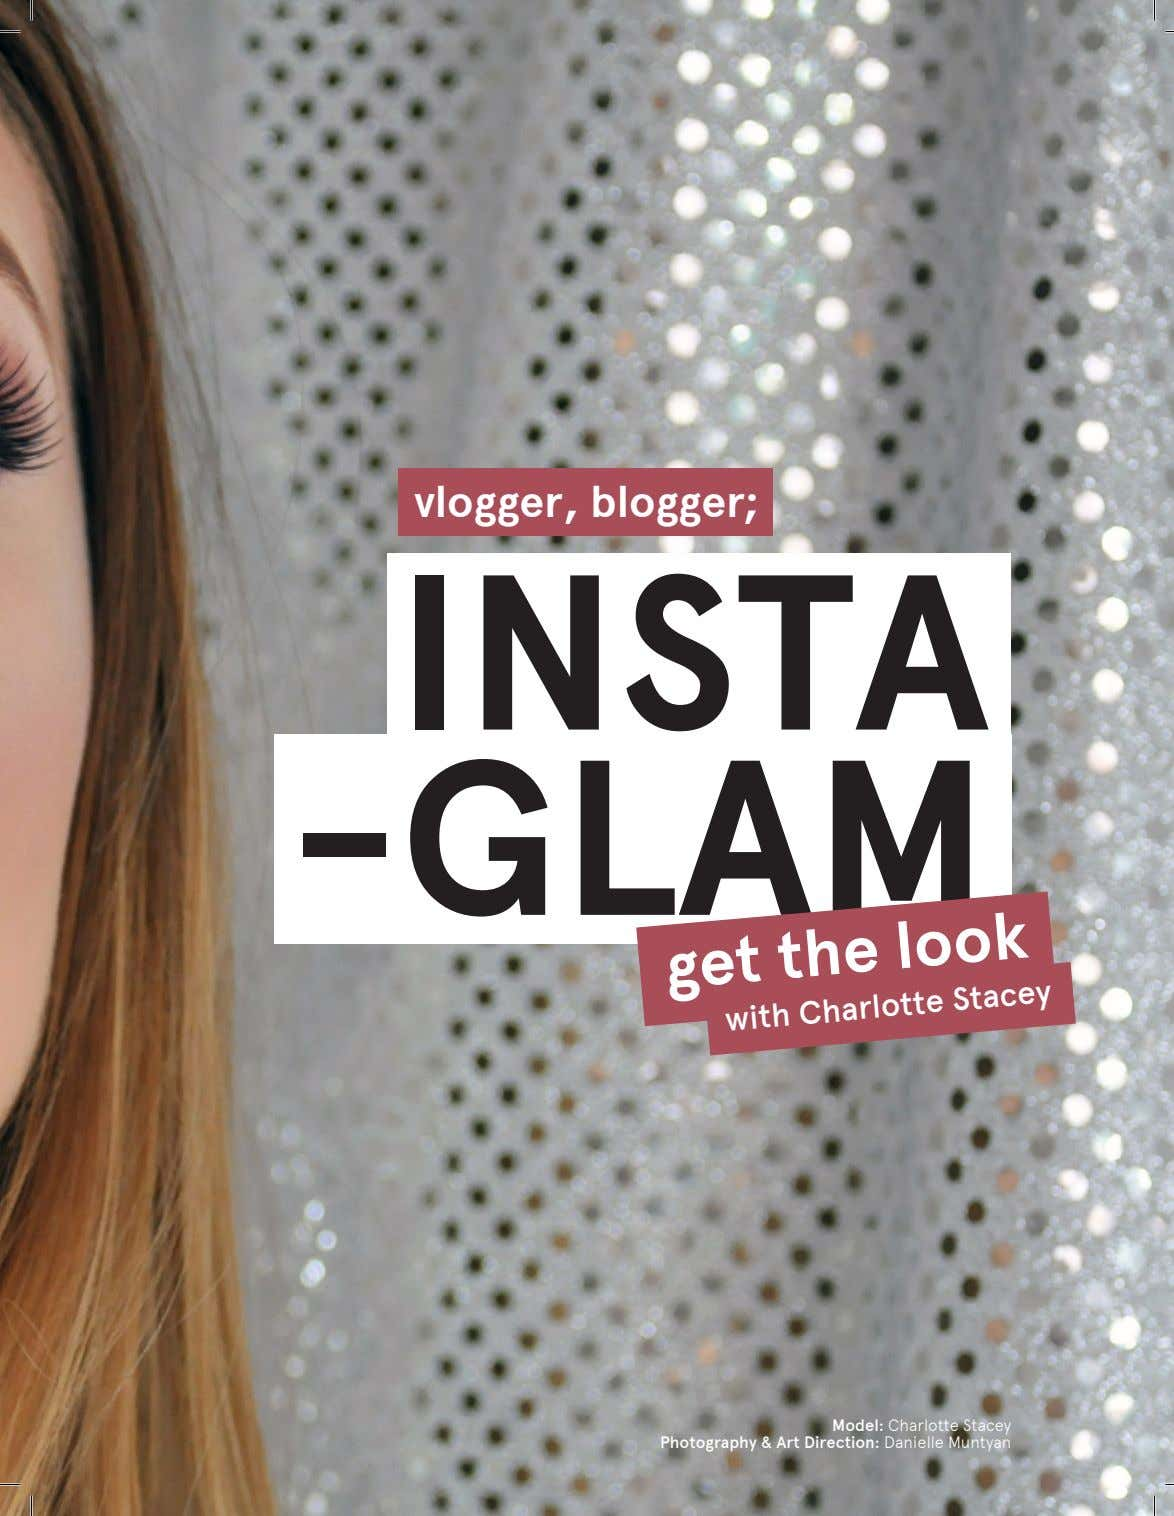 vlogger, blogger; INSTA -GLAM look get with the Charlotte Stacey Model: Charlotte Stacey Photography &